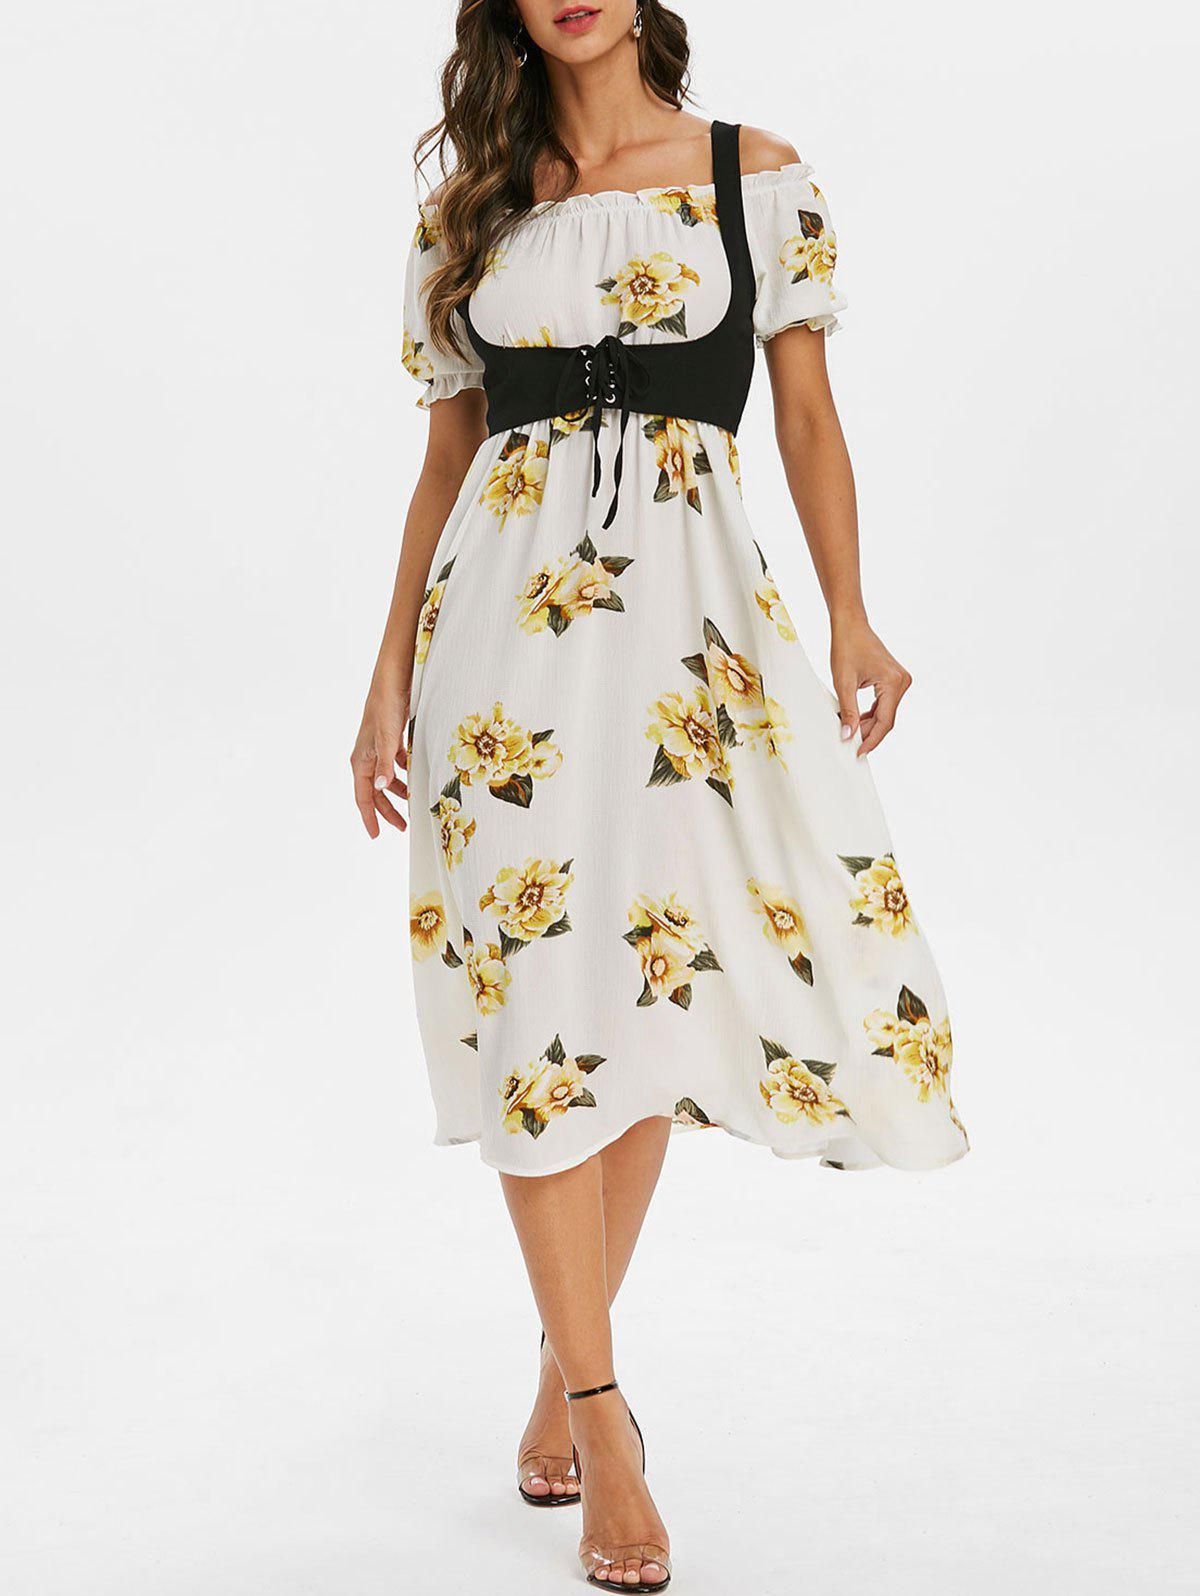 High Waist Floral Print Dress with Lace Up Top фото